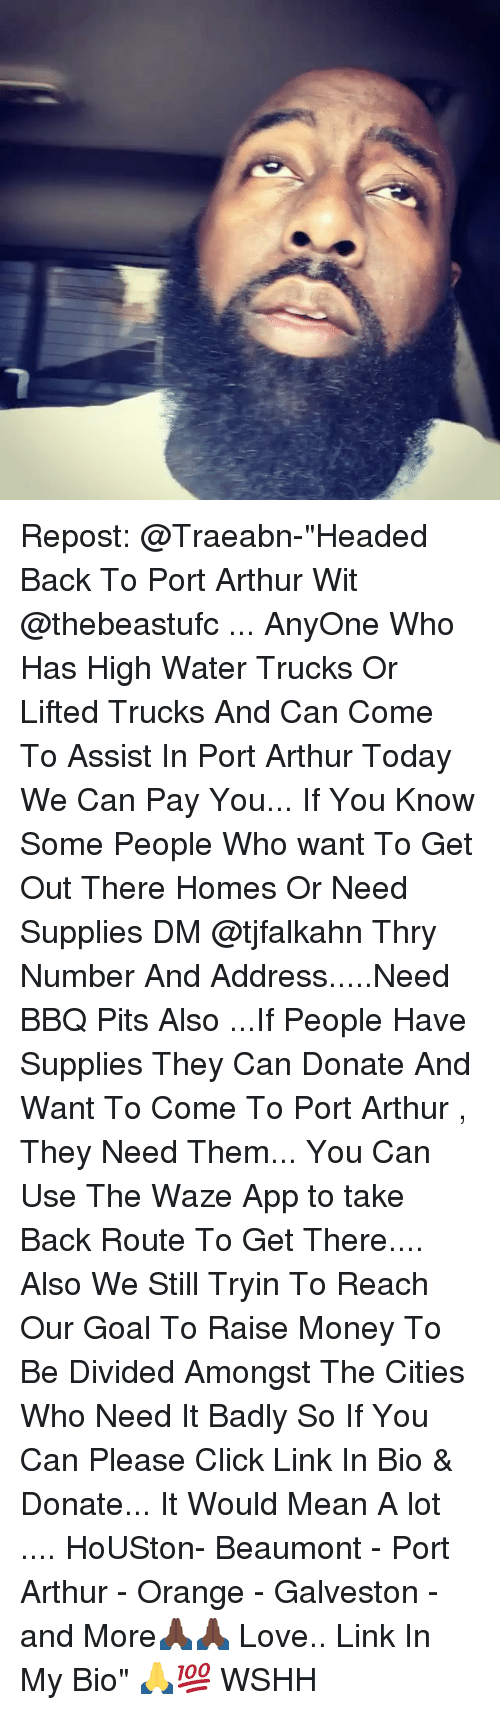 """Arthur, Click, and Love: Repost: @Traeabn-""""Headed Back To Port Arthur Wit @thebeastufc ... AnyOne Who Has High Water Trucks Or Lifted Trucks And Can Come To Assist In Port Arthur Today We Can Pay You... If You Know Some People Who want To Get Out There Homes Or Need Supplies DM @tjfalkahn Thry Number And Address.....Need BBQ Pits Also ...If People Have Supplies They Can Donate And Want To Come To Port Arthur , They Need Them... You Can Use The Waze App to take Back Route To Get There.... Also We Still Tryin To Reach Our Goal To Raise Money To Be Divided Amongst The Cities Who Need It Badly So If You Can Please Click Link In Bio & Donate... It Would Mean A lot .... HoUSton- Beaumont - Port Arthur - Orange - Galveston - and More🙏🏿🙏🏿 Love.. Link In My Bio"""" 🙏💯 WSHH"""